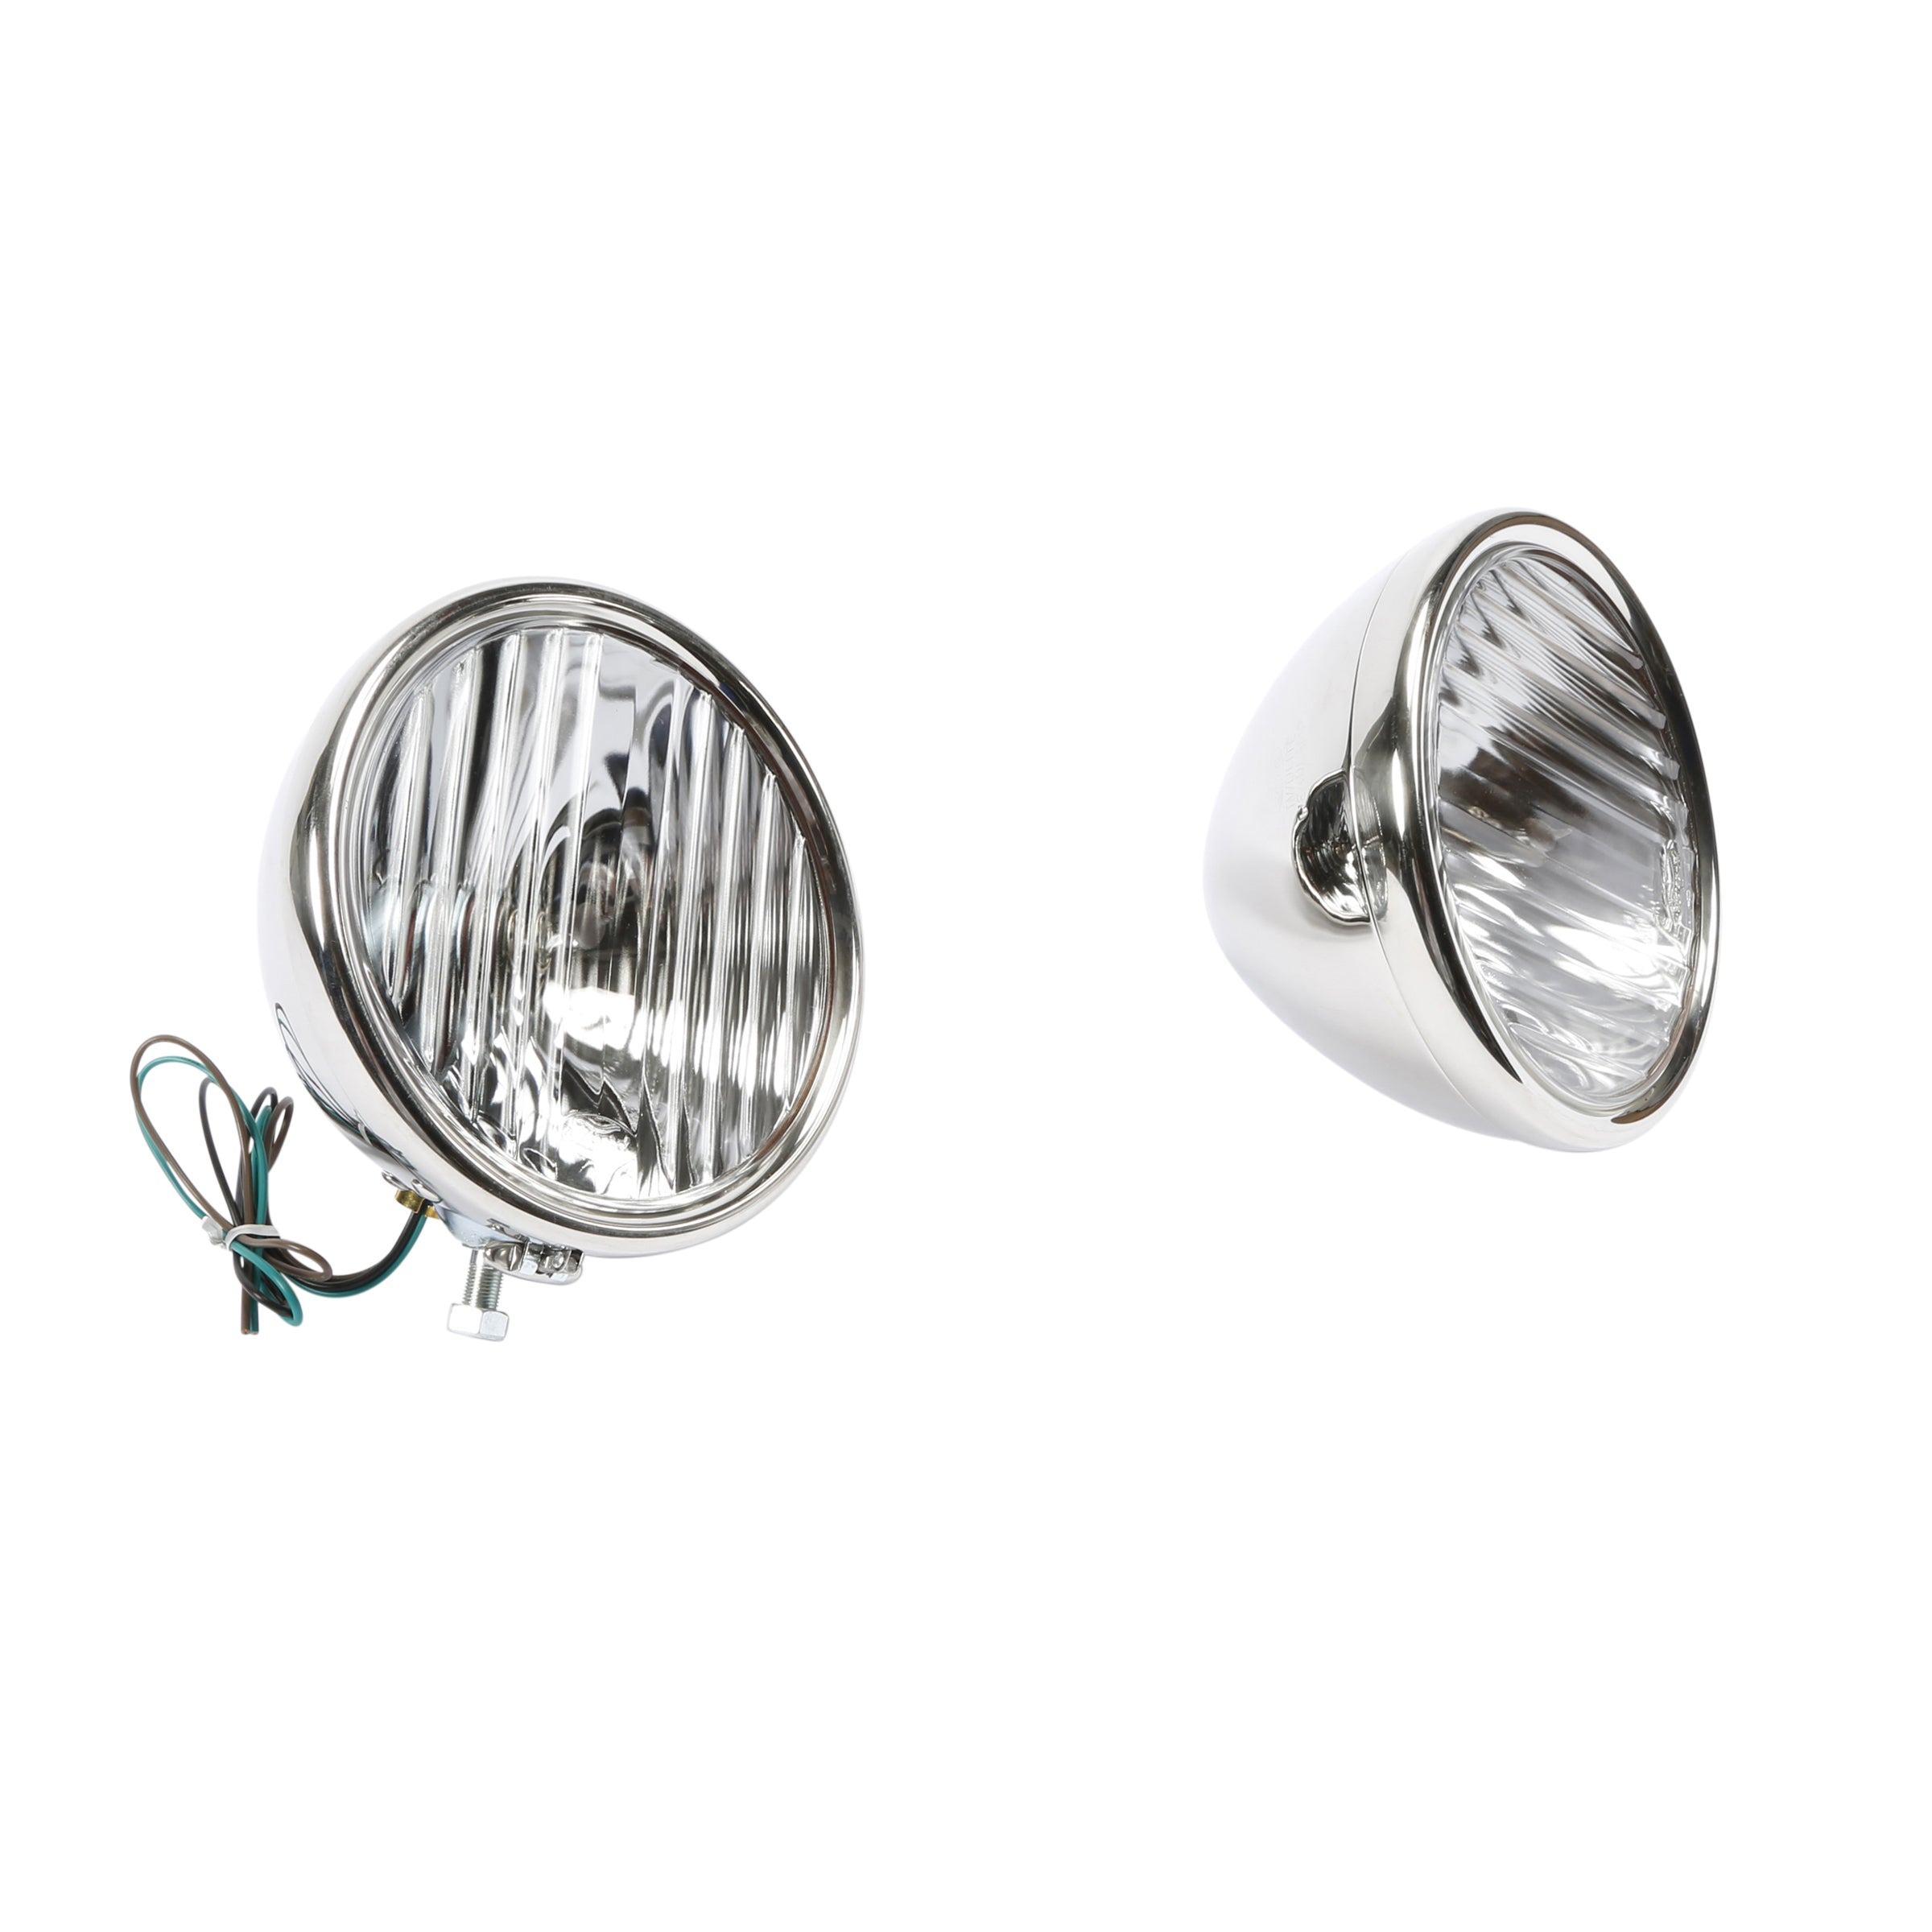 Headlights (12 Volt Halogen) • 1928-29 Stainless w/Fluted Lens